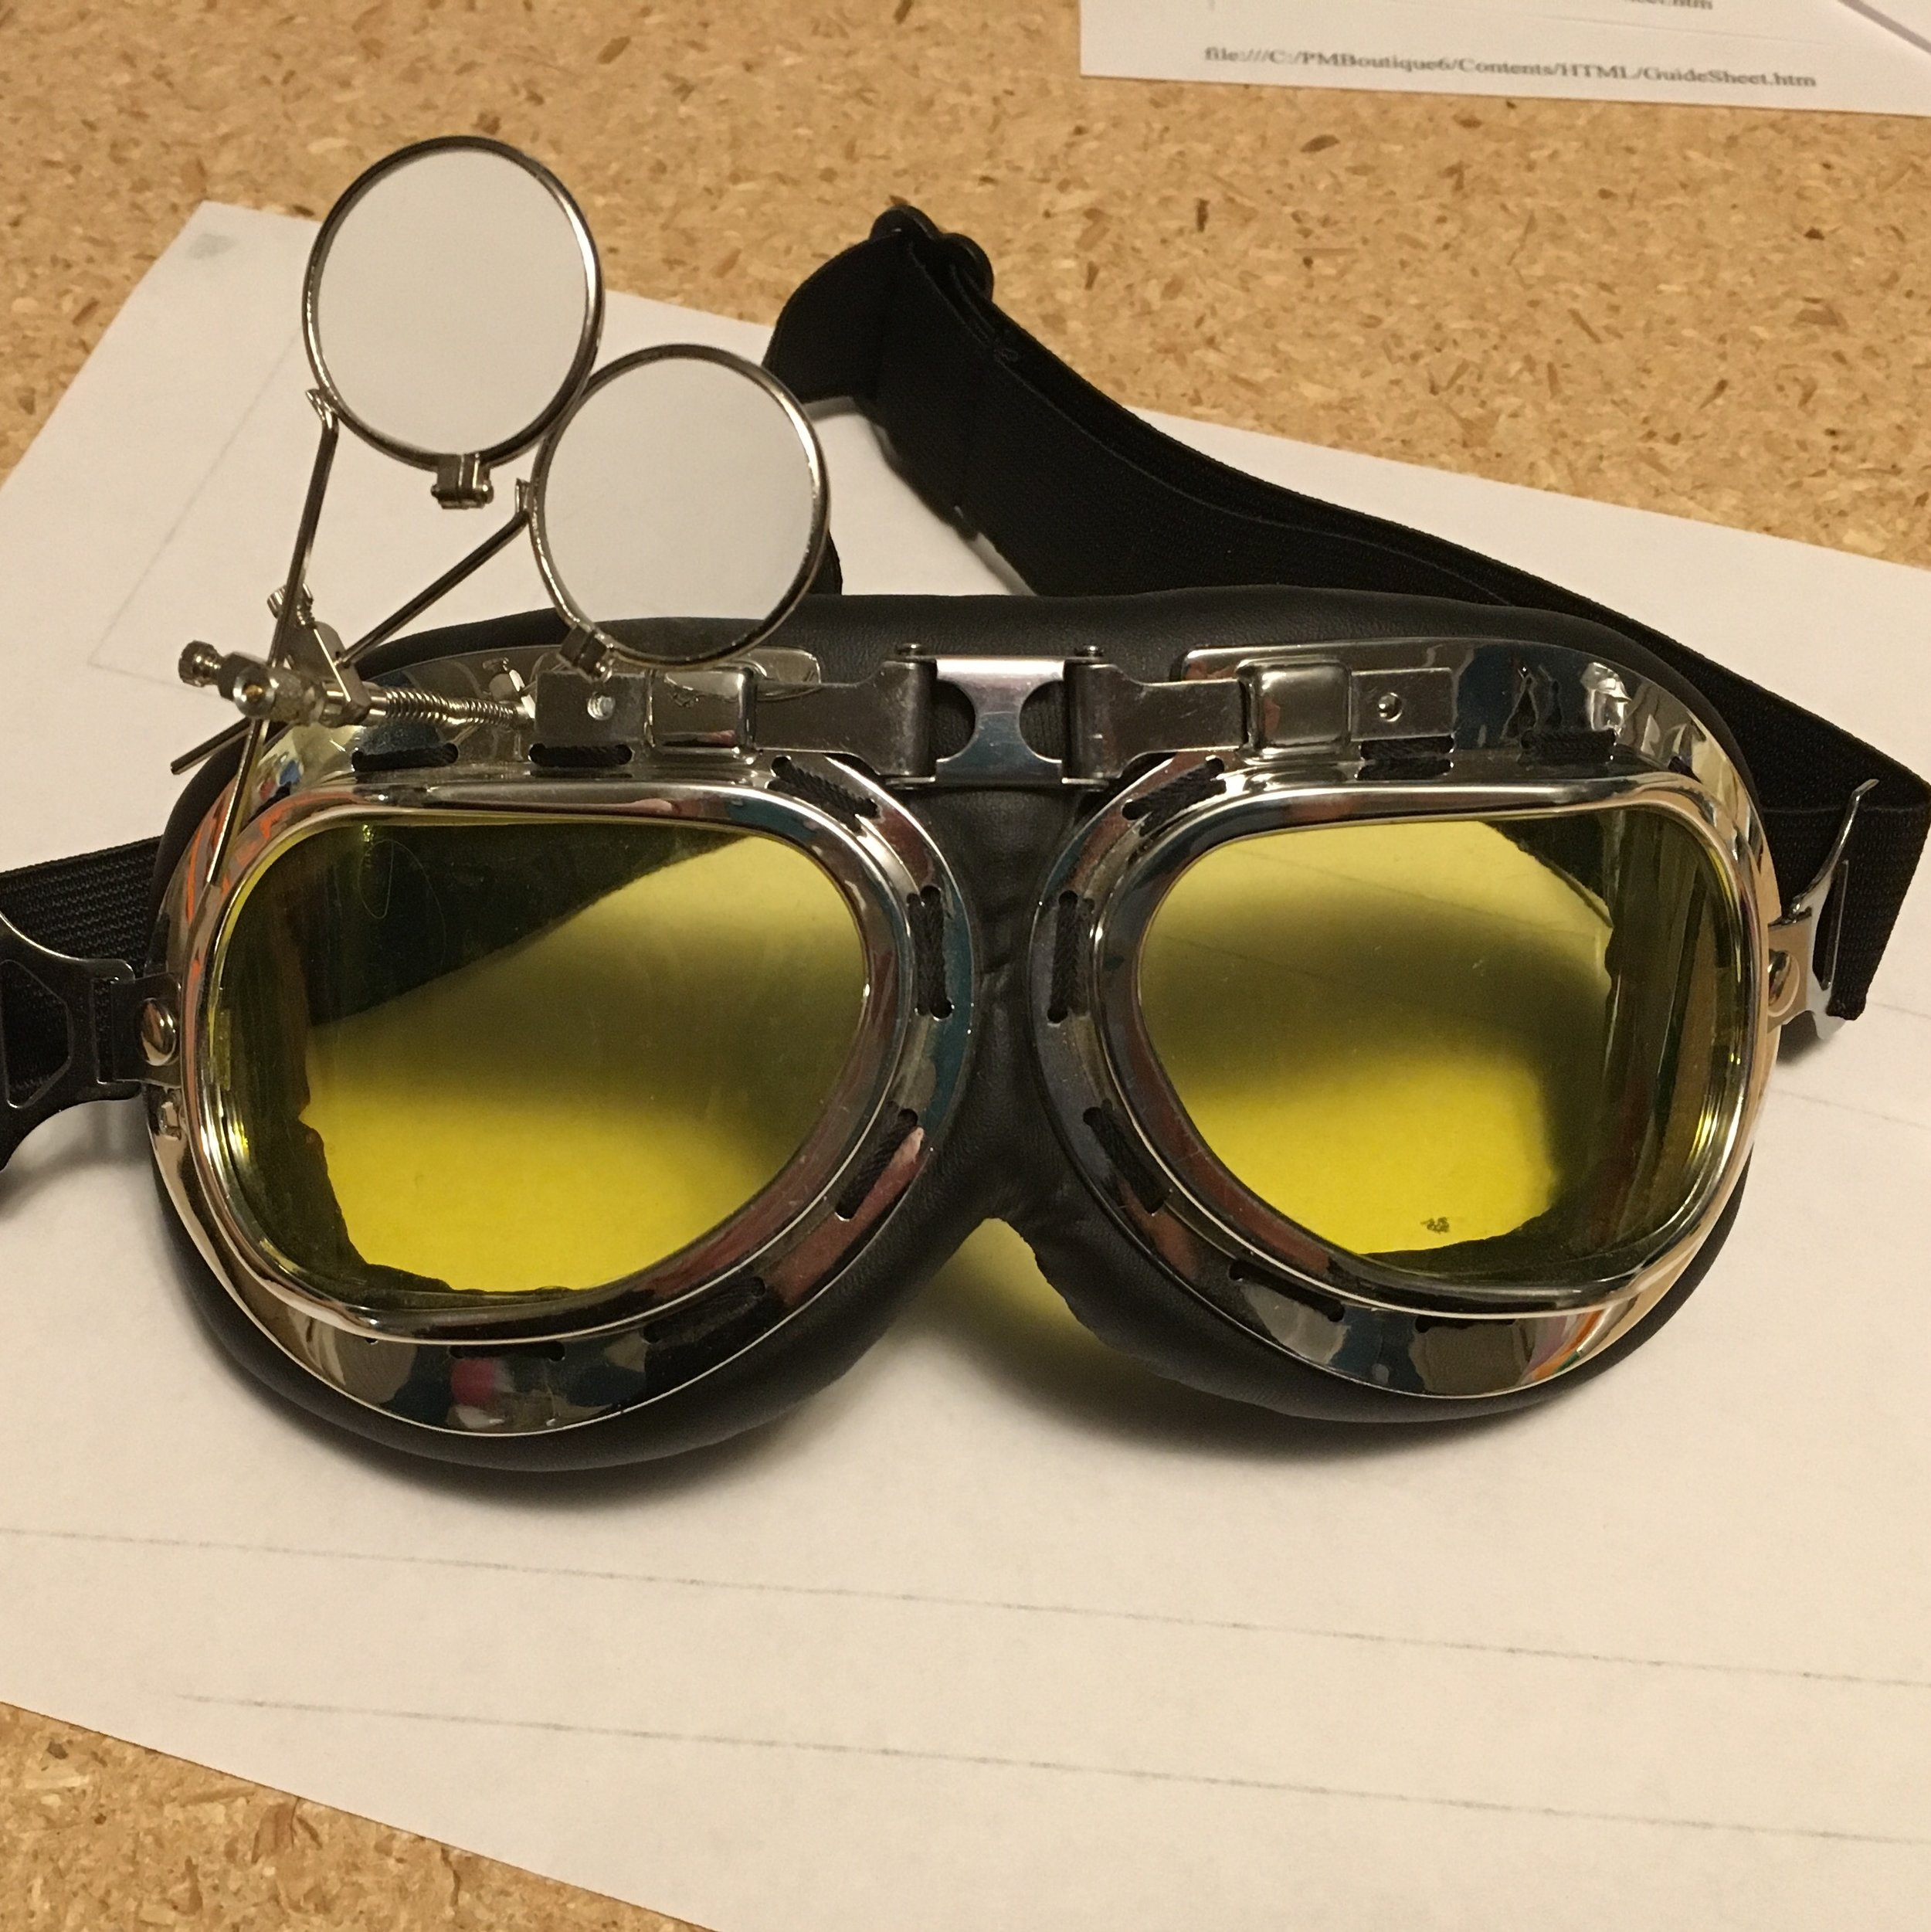 Holtzmann' safety goggles